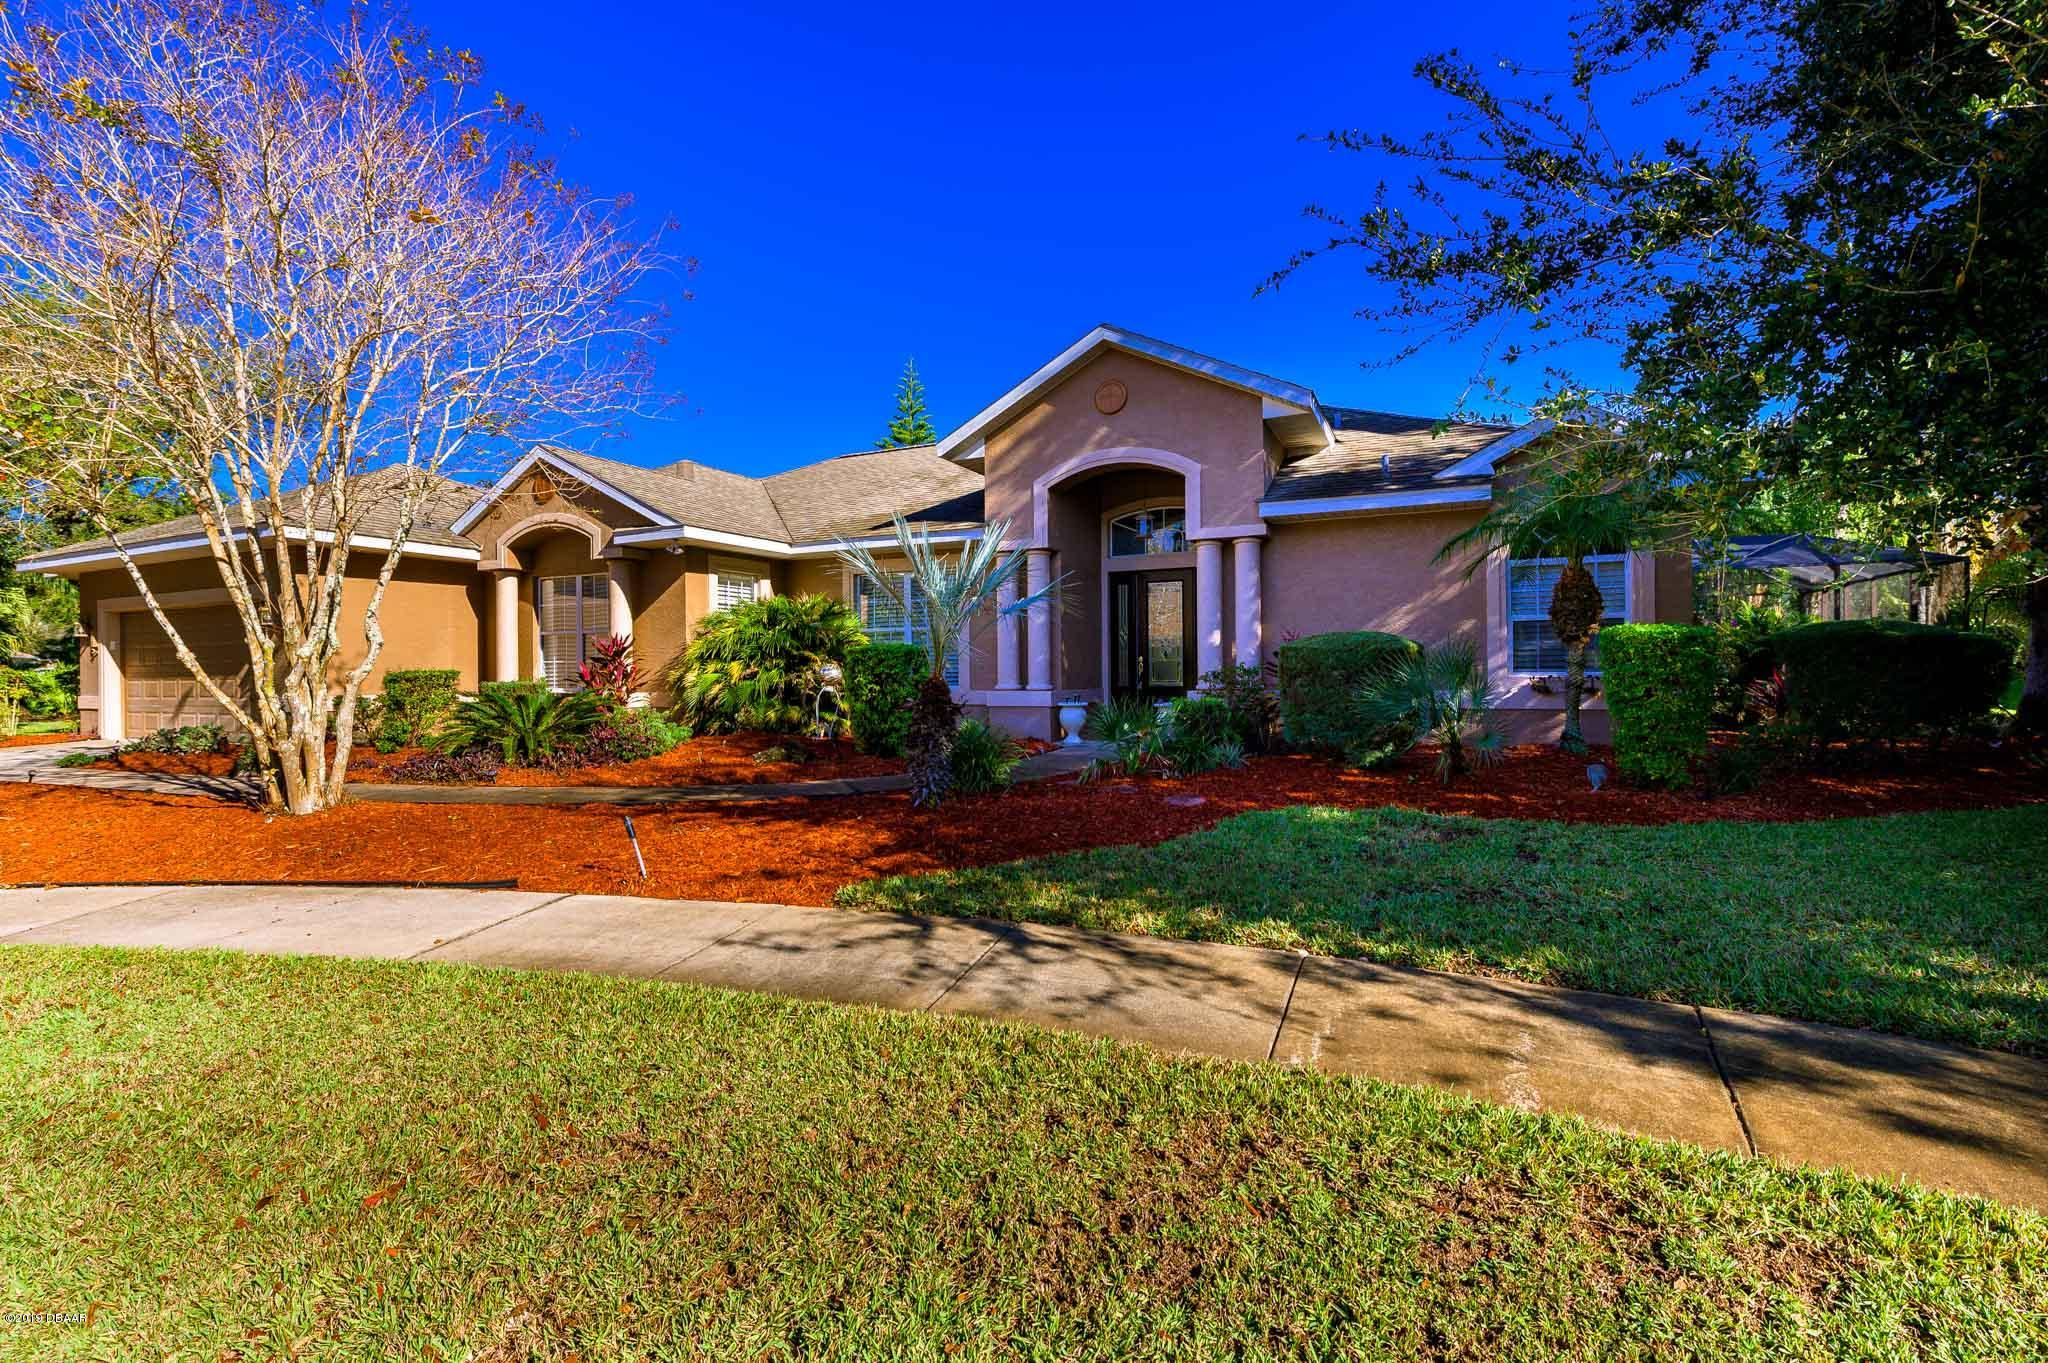 3409 Rexford Circle, Ormond Beach, FL 32174